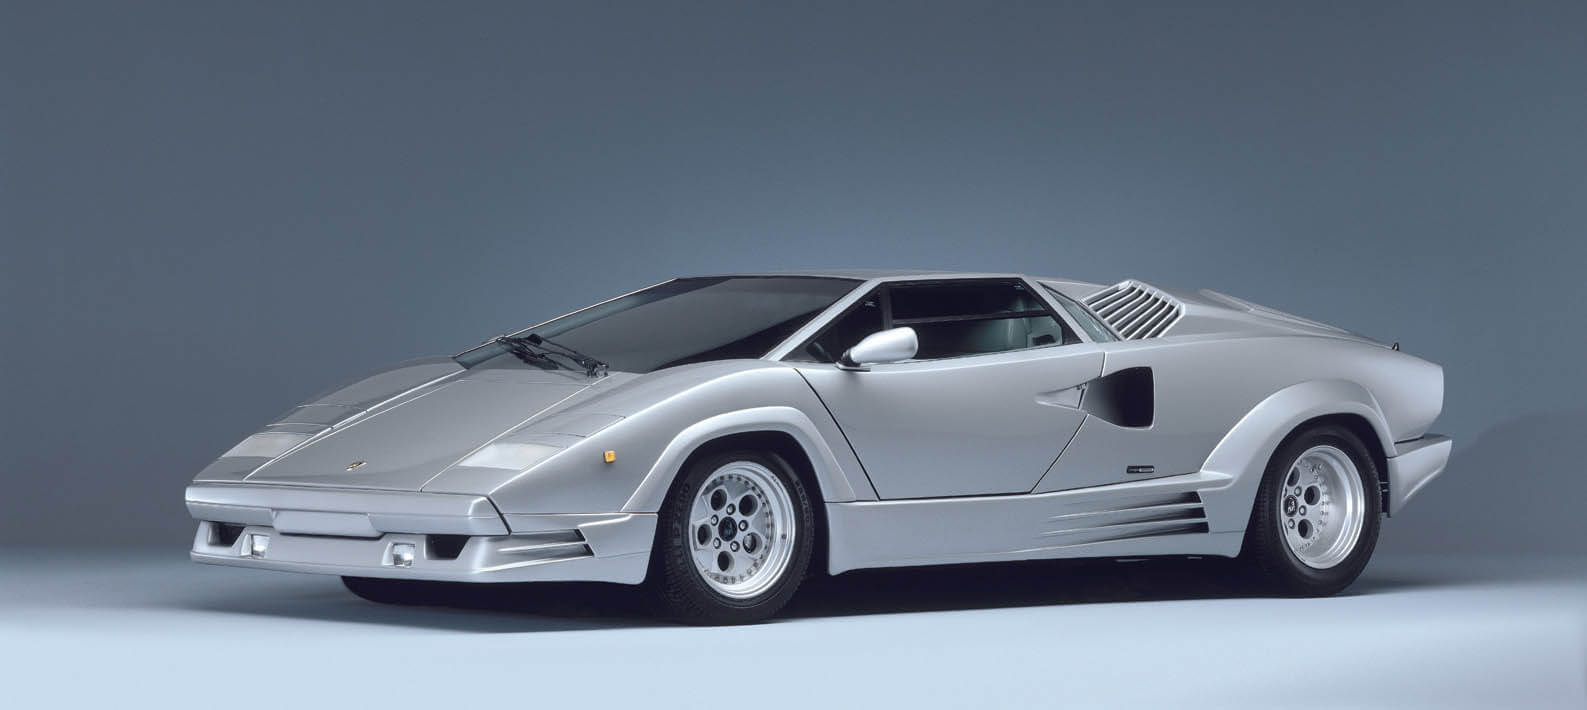 Things you didn't know about Lamborghini; Lamborghini Countach